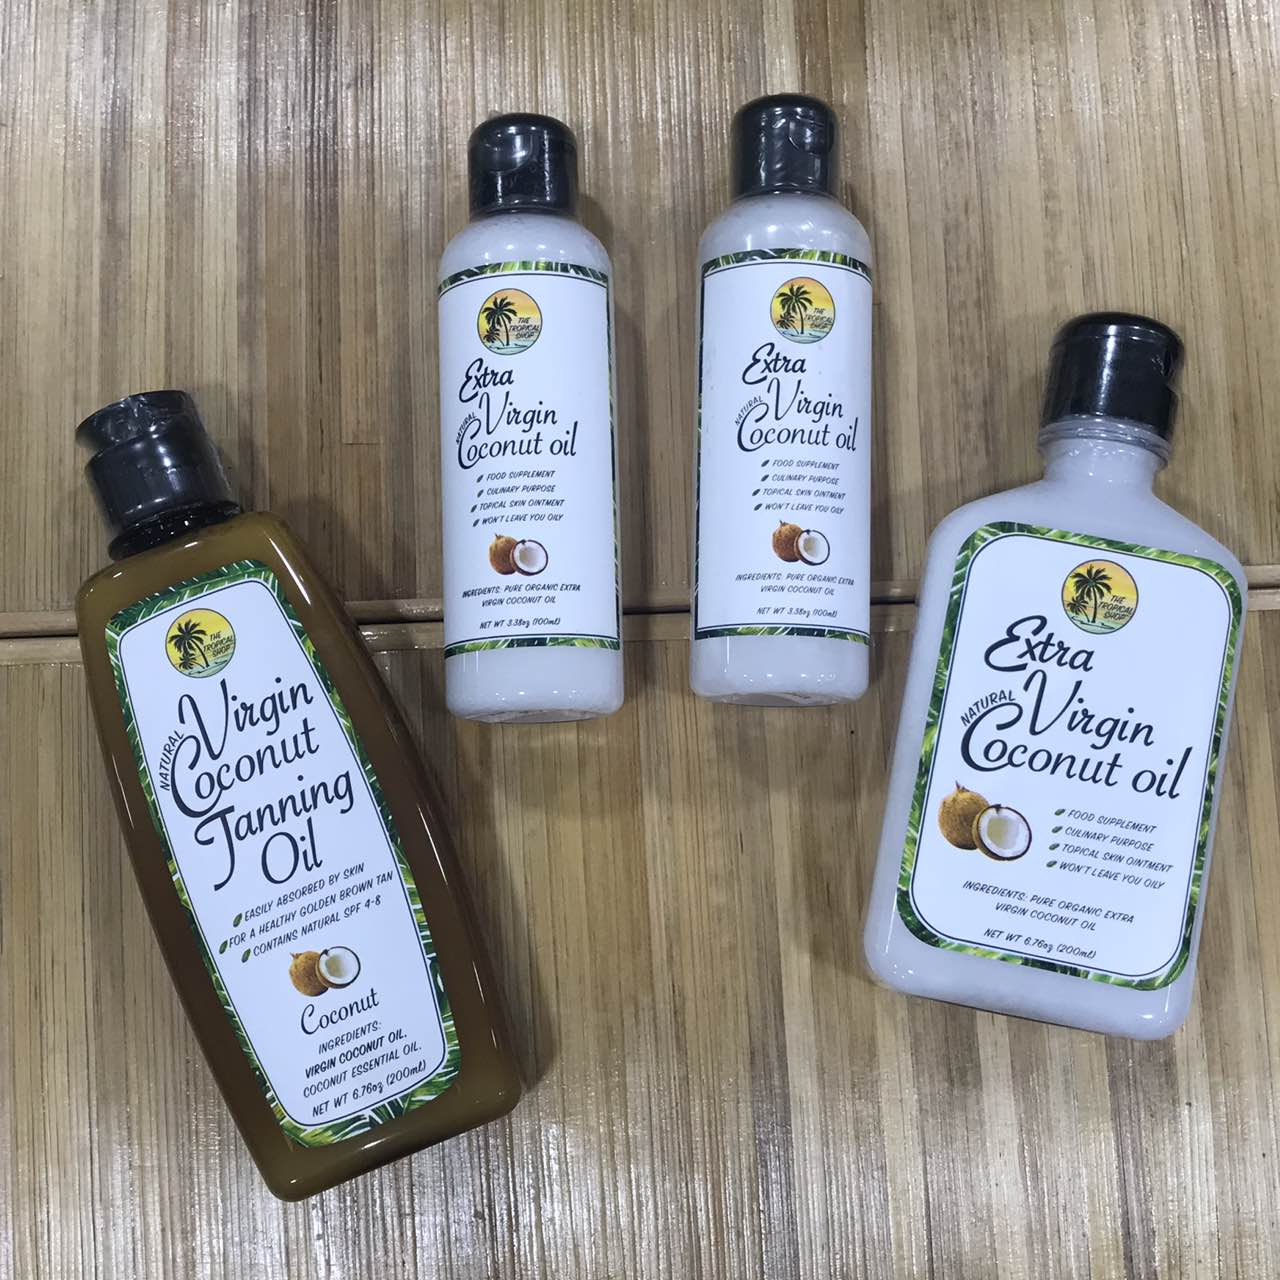 Proudly made in the Philippines Extra Virgin Coconut Oil